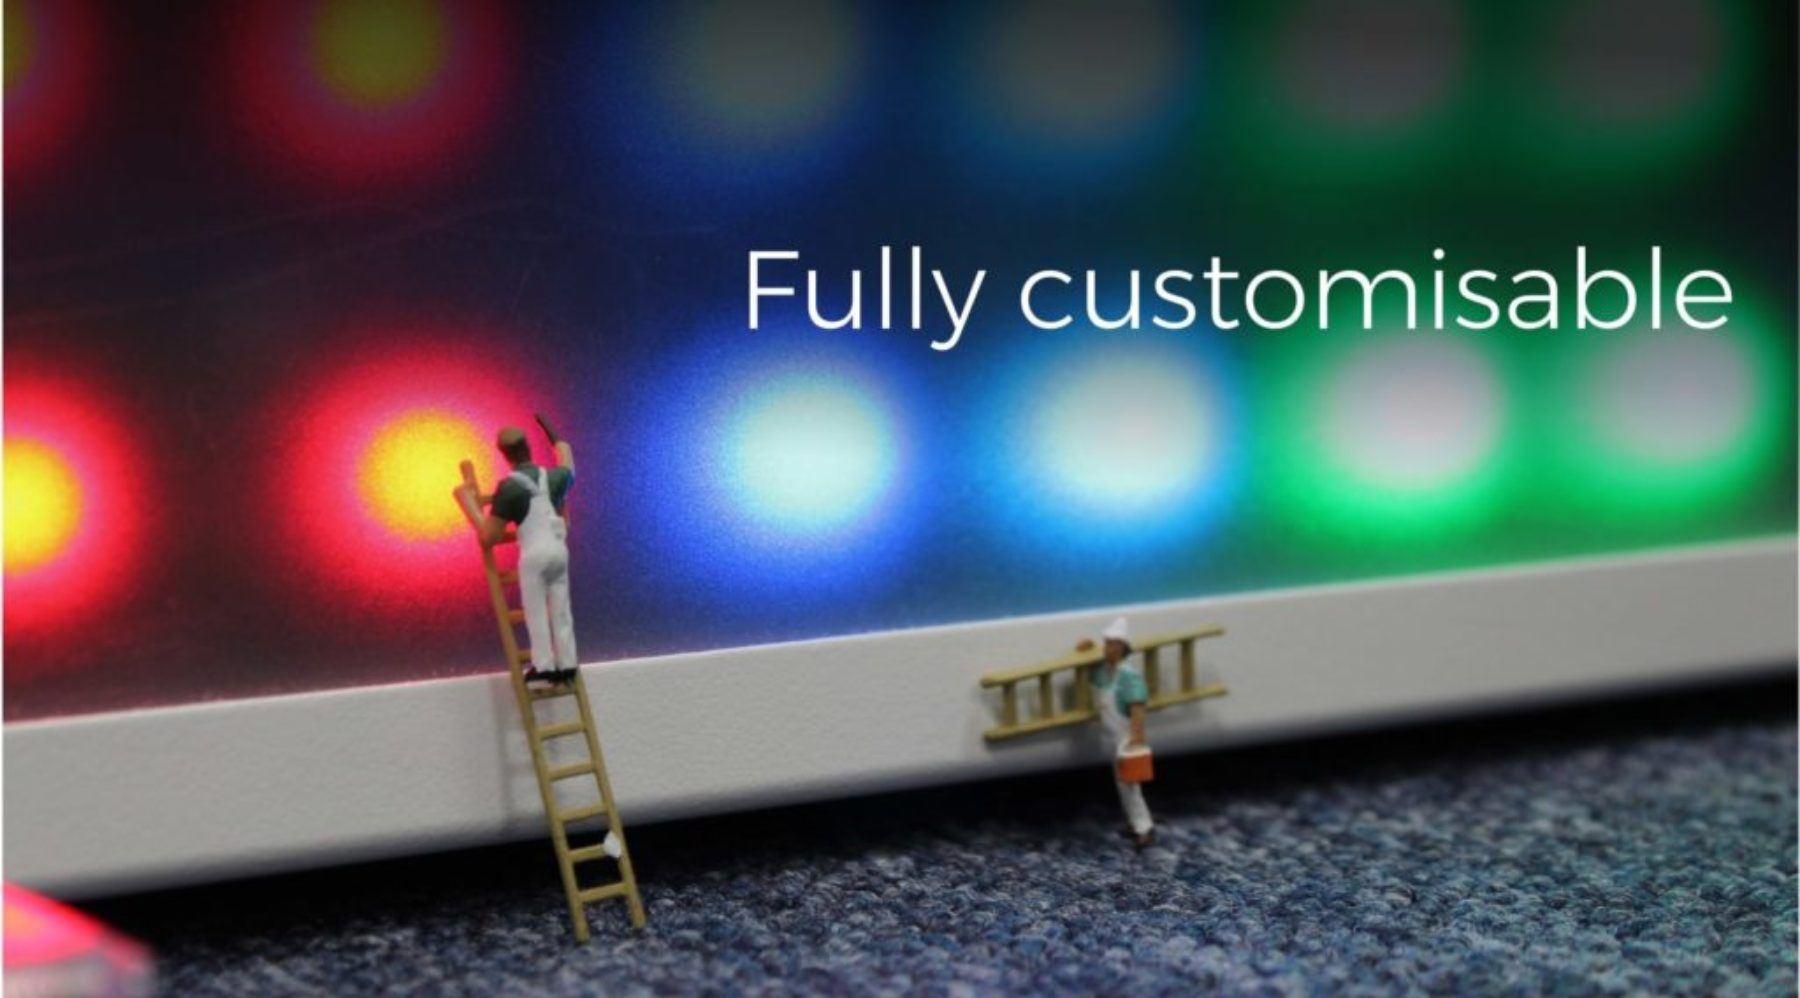 fully_customisable